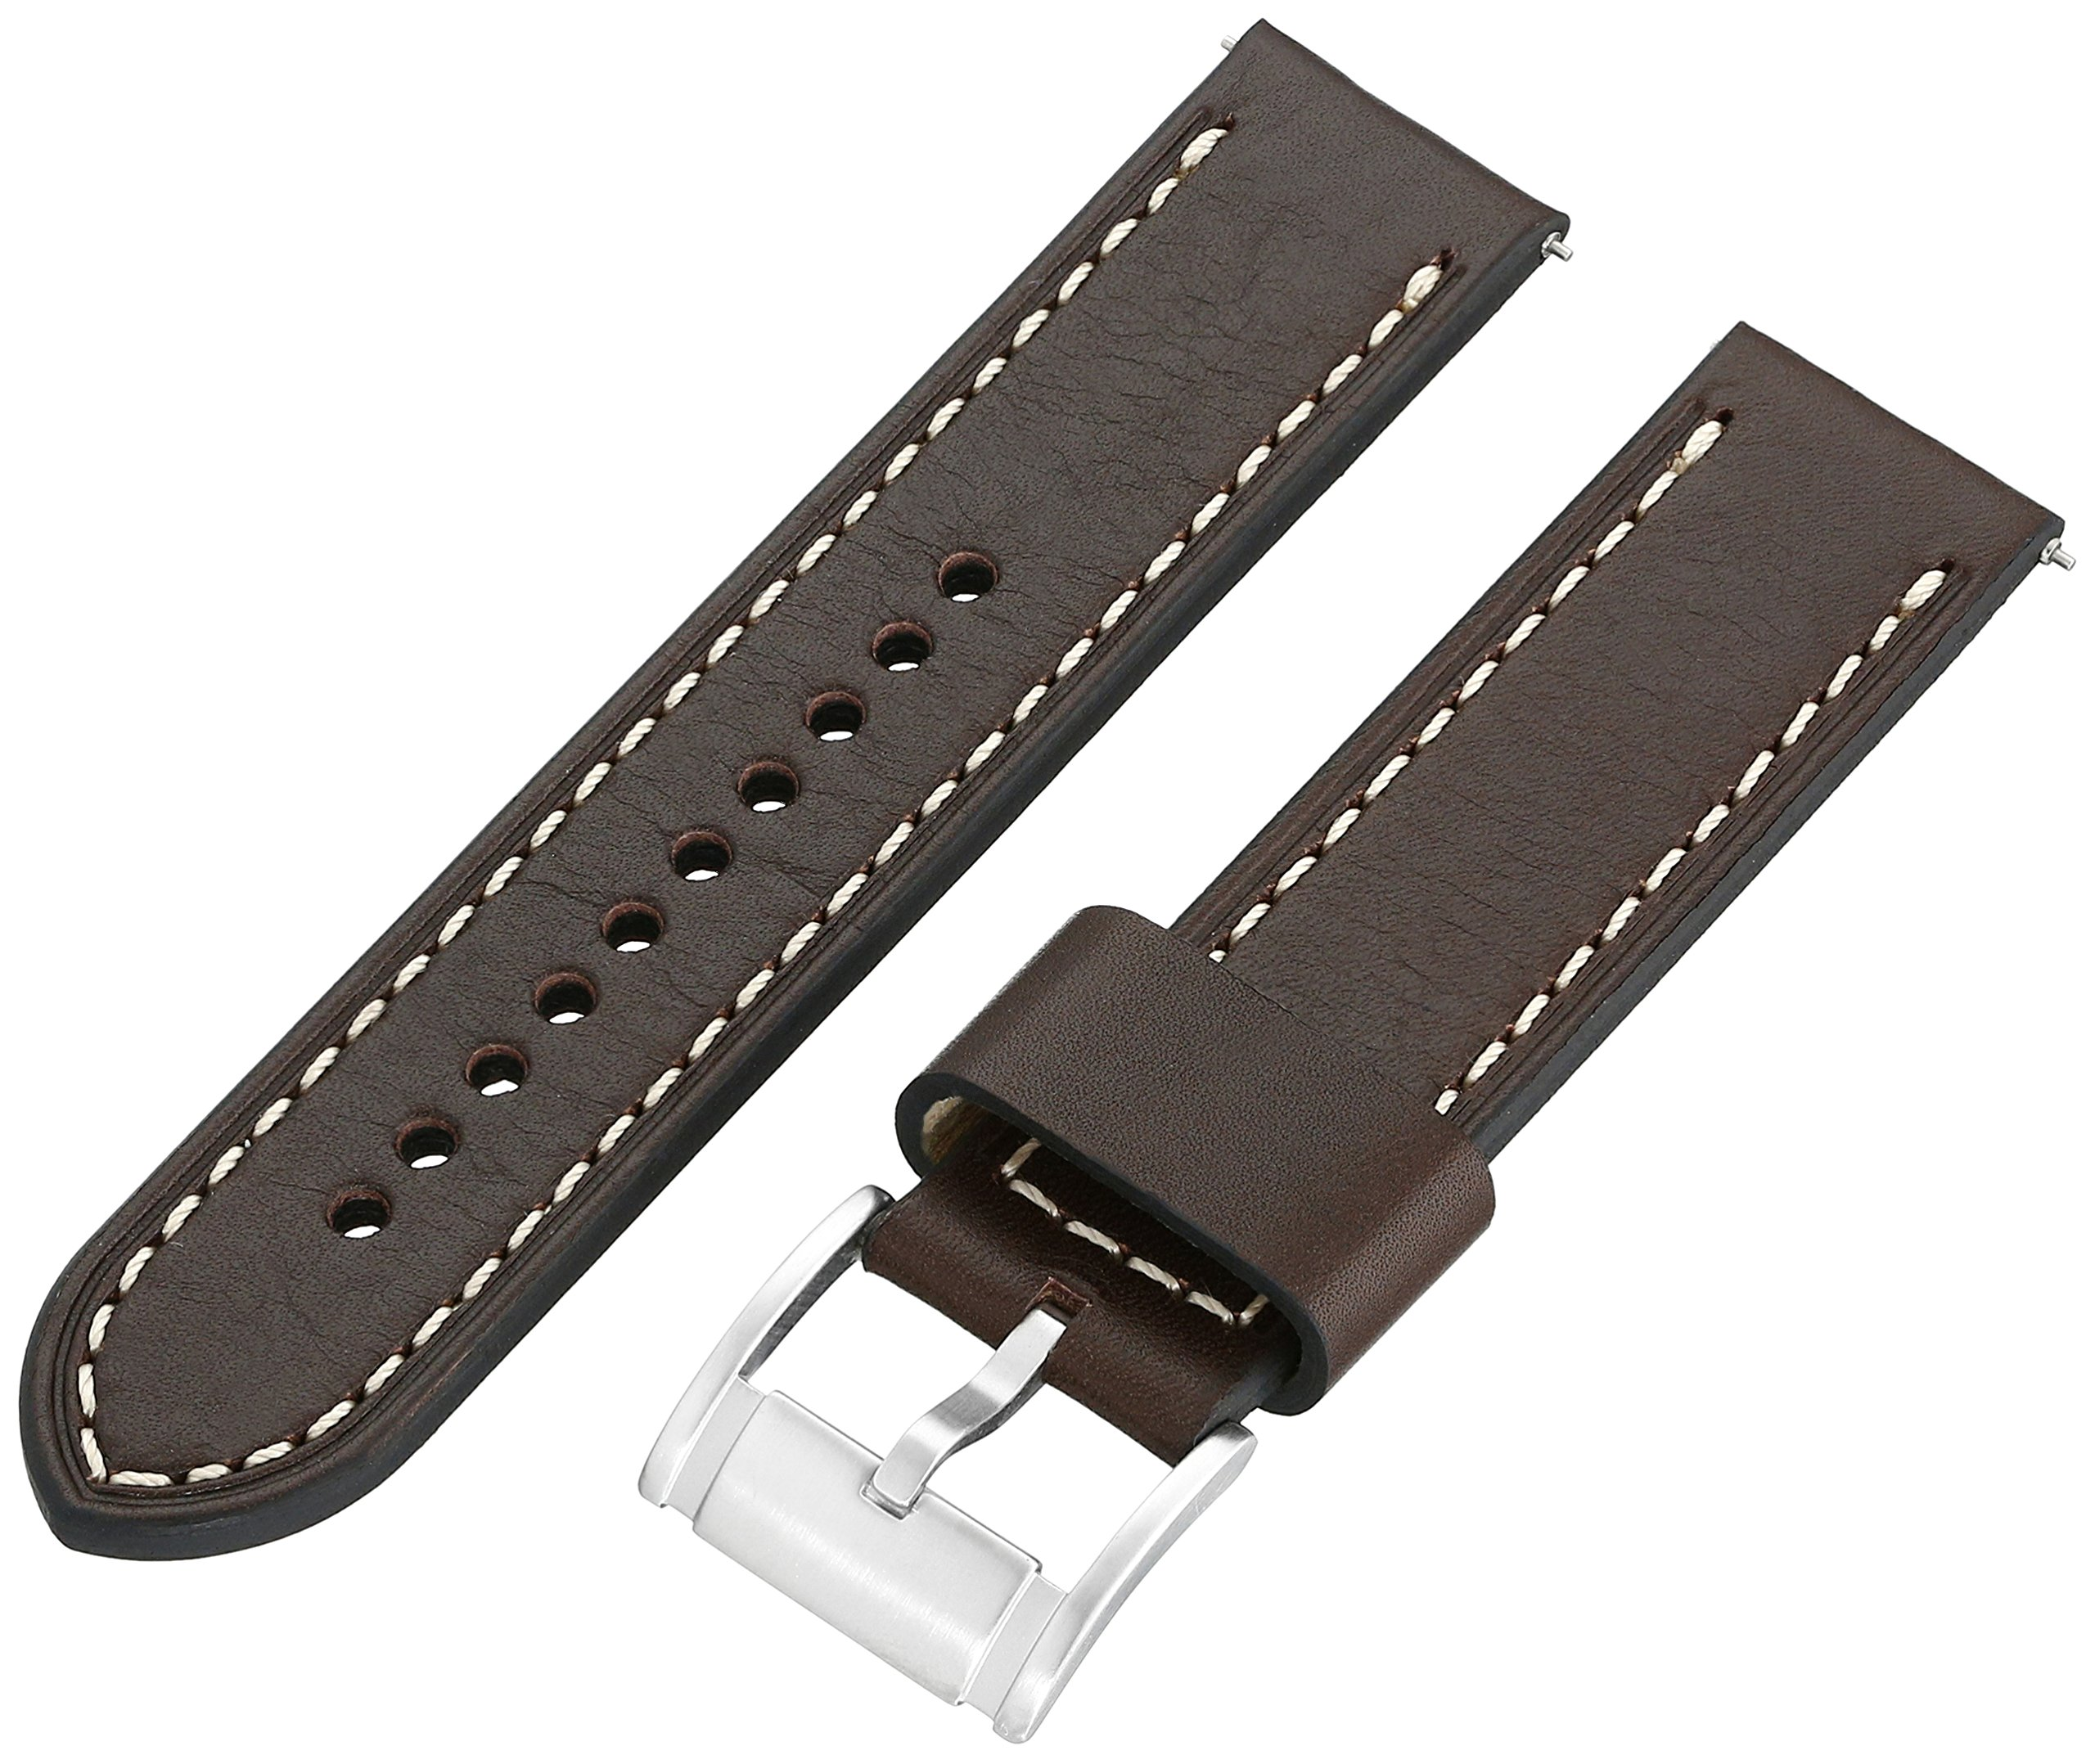 Fossil S221242 22mm Leather Calfskin Brown Watch Strap